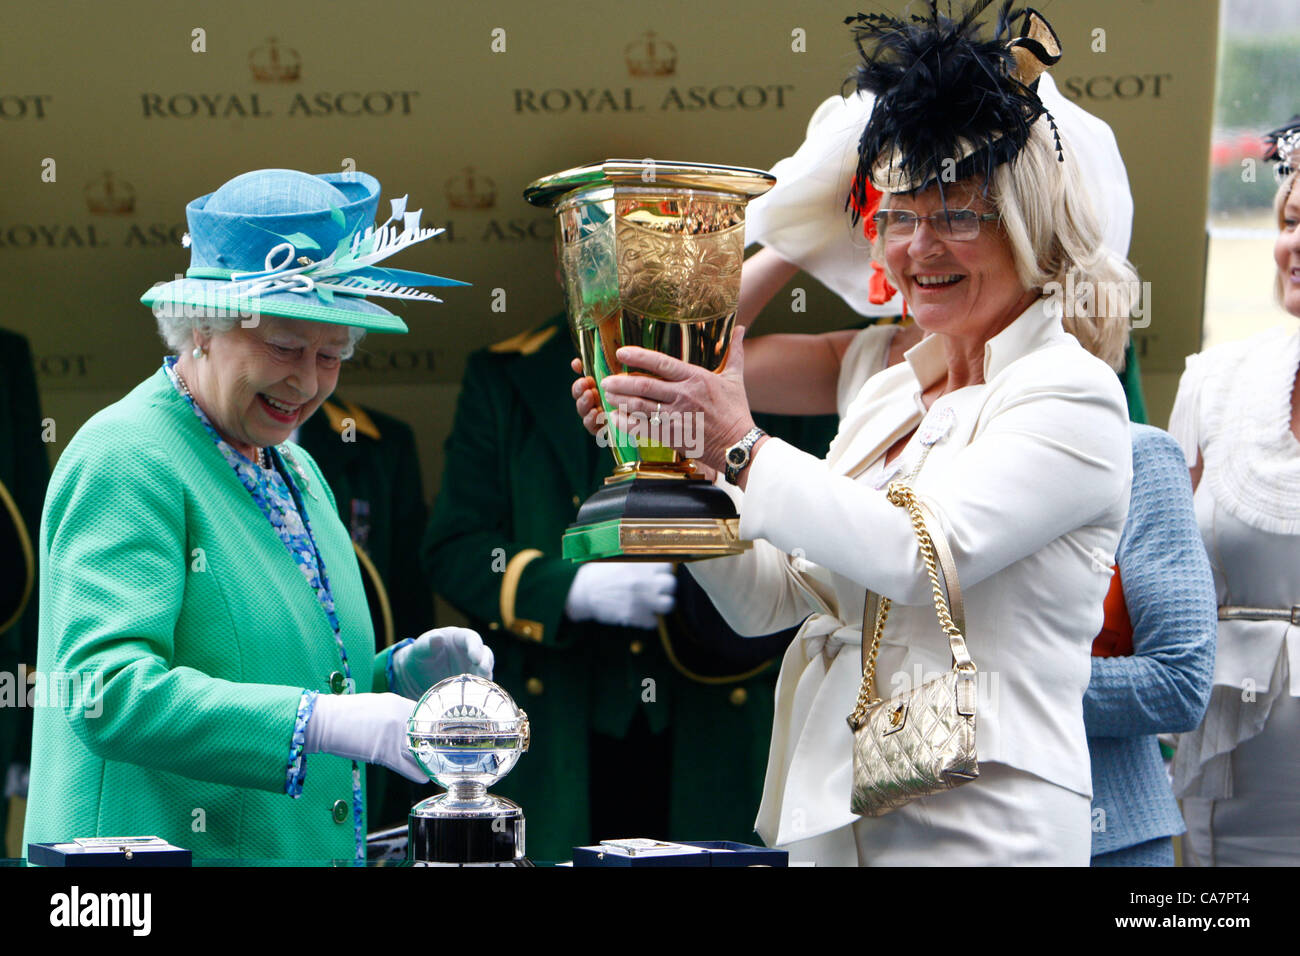 23.06.2012 Ascot, Windsor, ENGLAND, UK: Queen Elizabeth II presents one of the Owners of Black Caviar with the Trophy - Stock Image